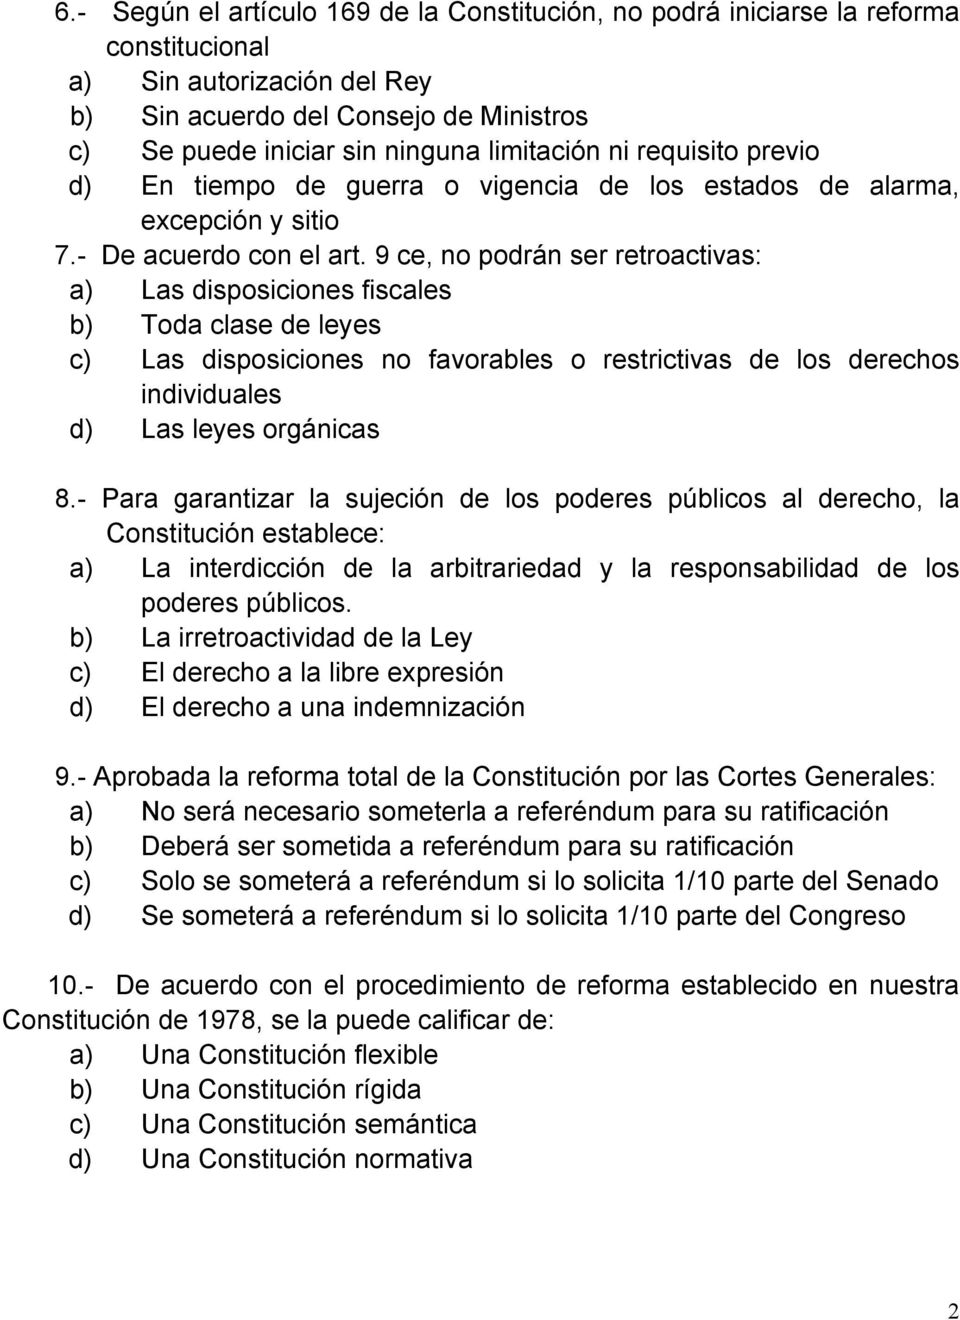 9 ce, no podrán ser retroactivas: a) Las disposiciones fiscales b) Toda clase de leyes c) Las disposiciones no favorables o restrictivas de los derechos individuales d) Las leyes orgánicas 8.